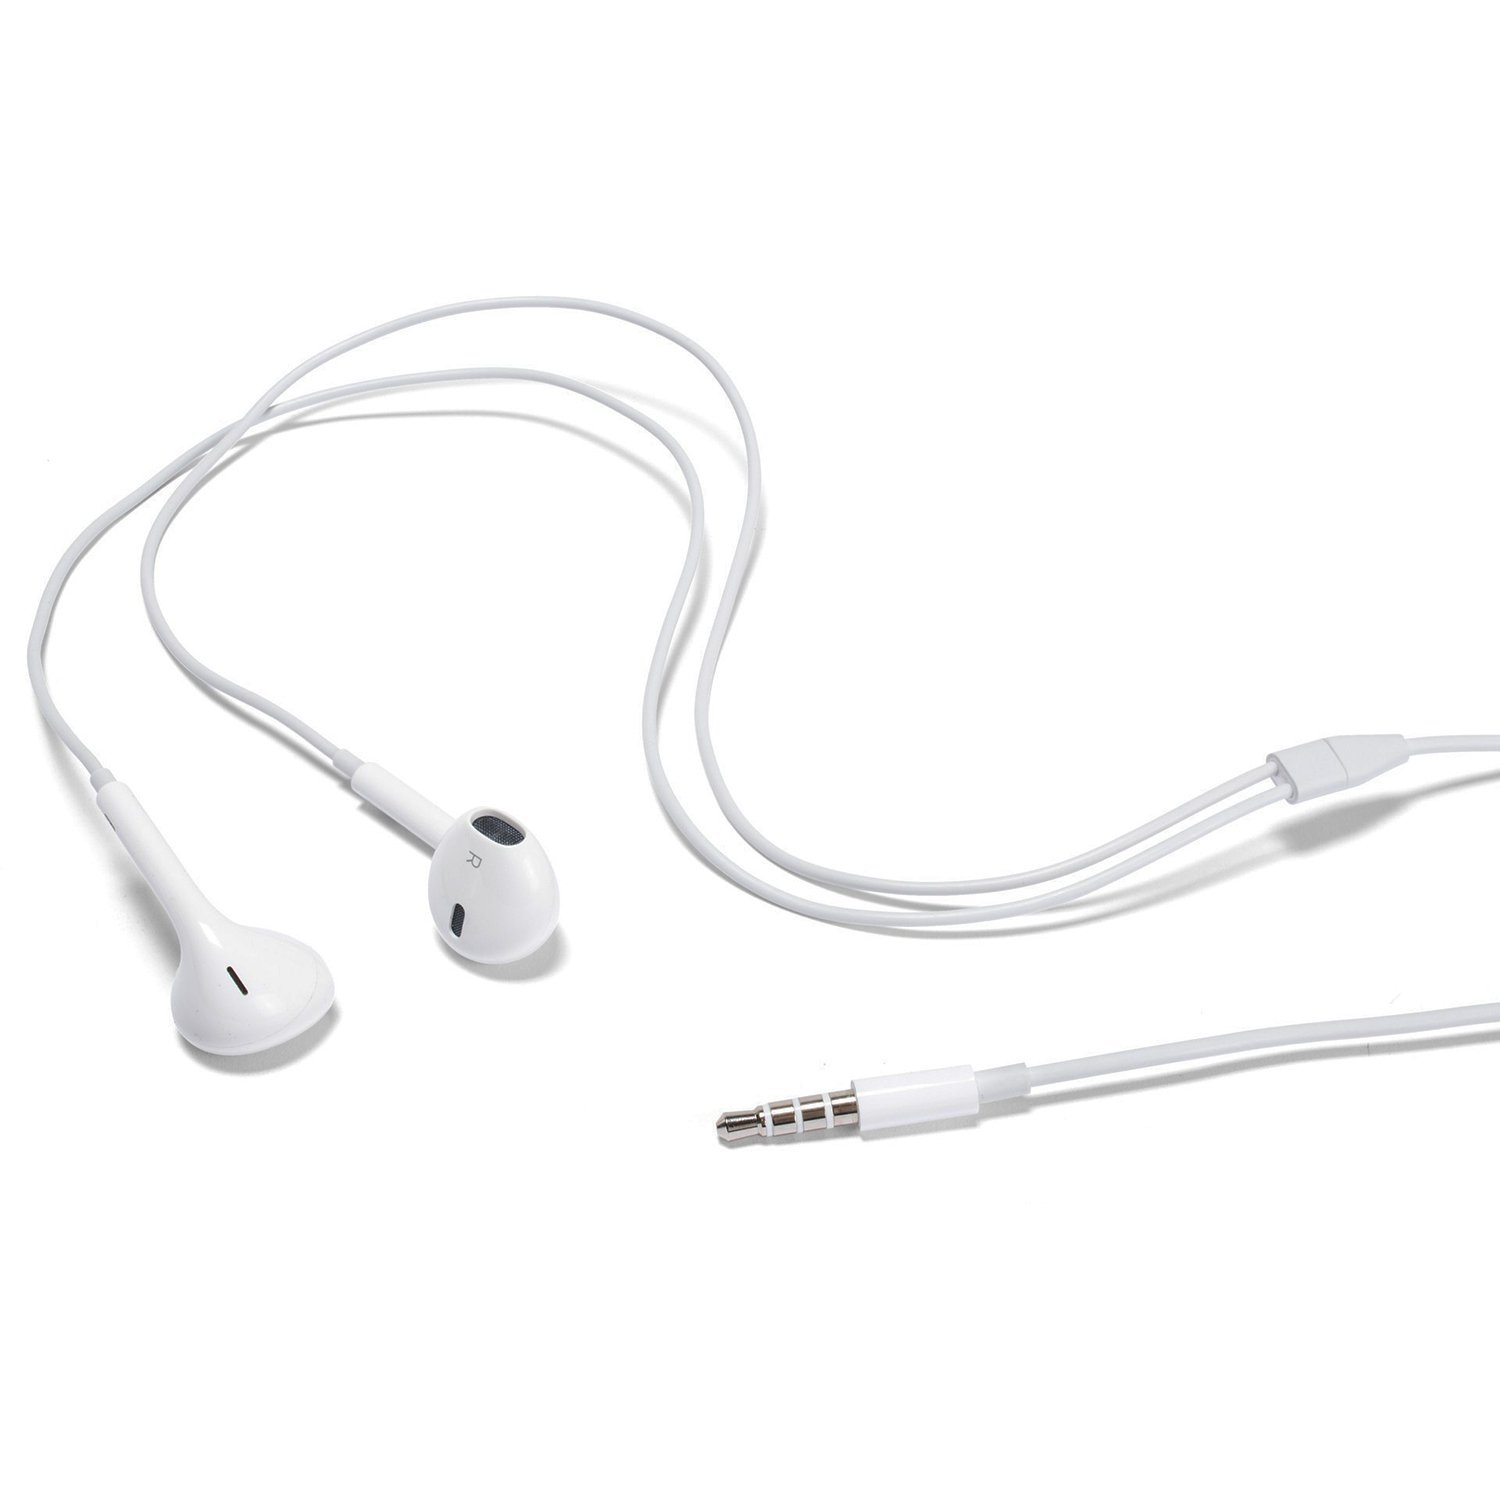 Iphone S Headphones Amazon